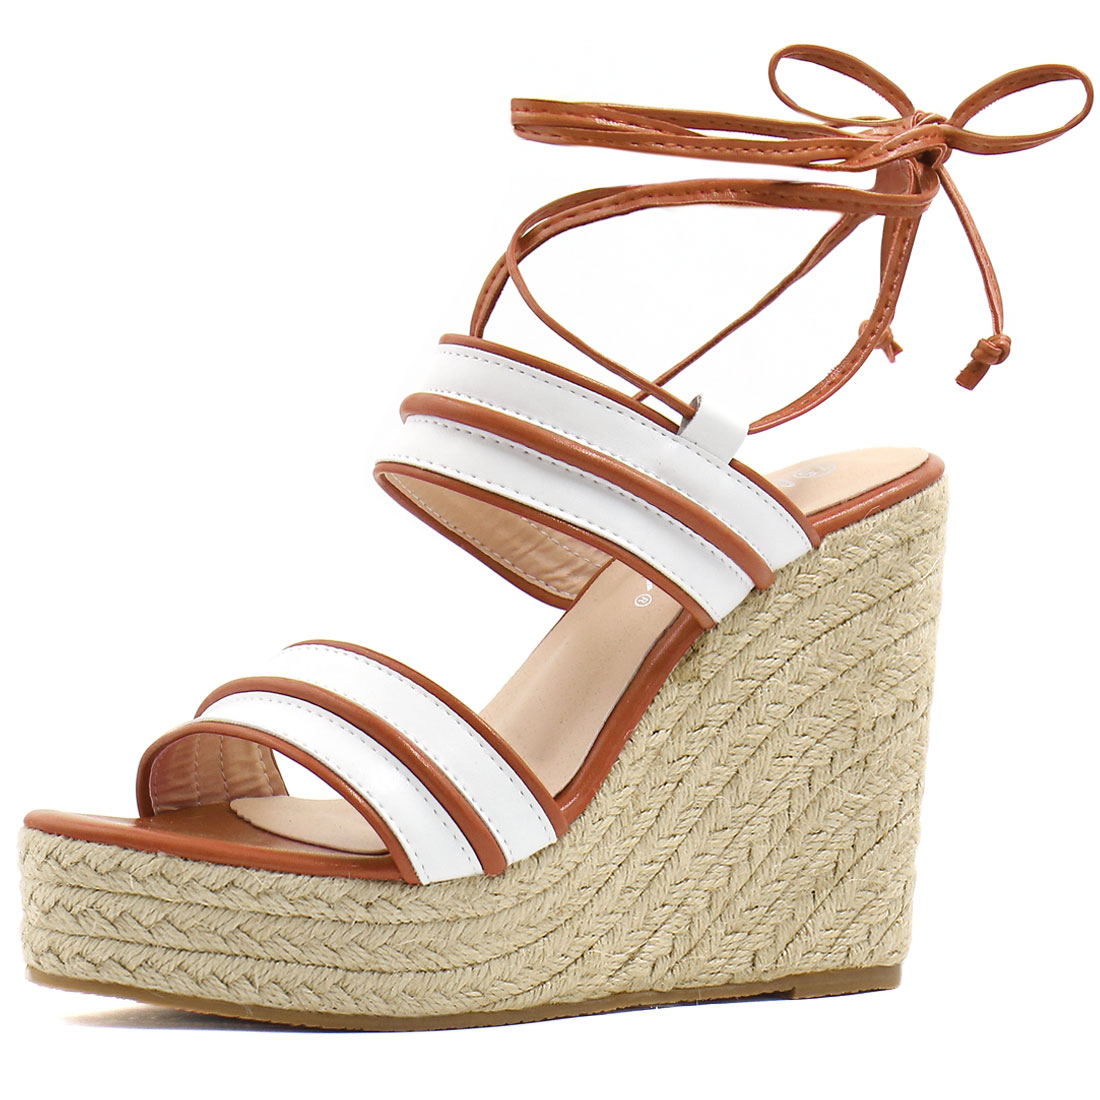 Women Striped Ankle Tie Espadrille Wedge Sandals White Camel US 7